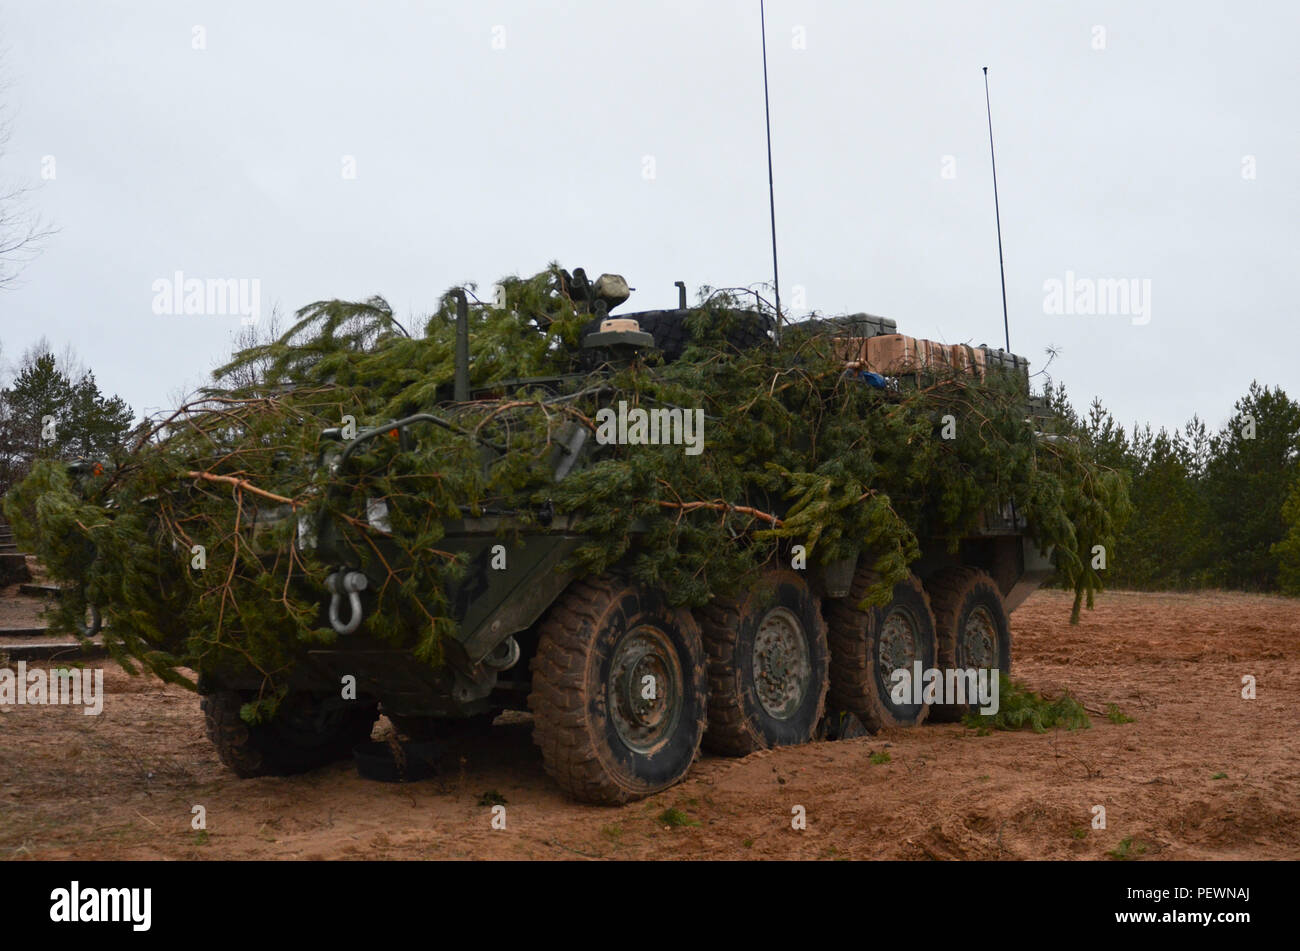 An M1129 Mortar Carrier Vehicle is camouflaged with pine branches to blend in with the surroundings during a night training exercise, which was held by the Soldiers of 3rd Squadron, 2nd Cavalry Regiment, stationed out of Vilseck, Germany, at Adazi Training Area in Latvia, Feb. 3, 2016. (Photo by U.S. Army Staff Sgt. Steven M. Colvin/Released) - Stock Image